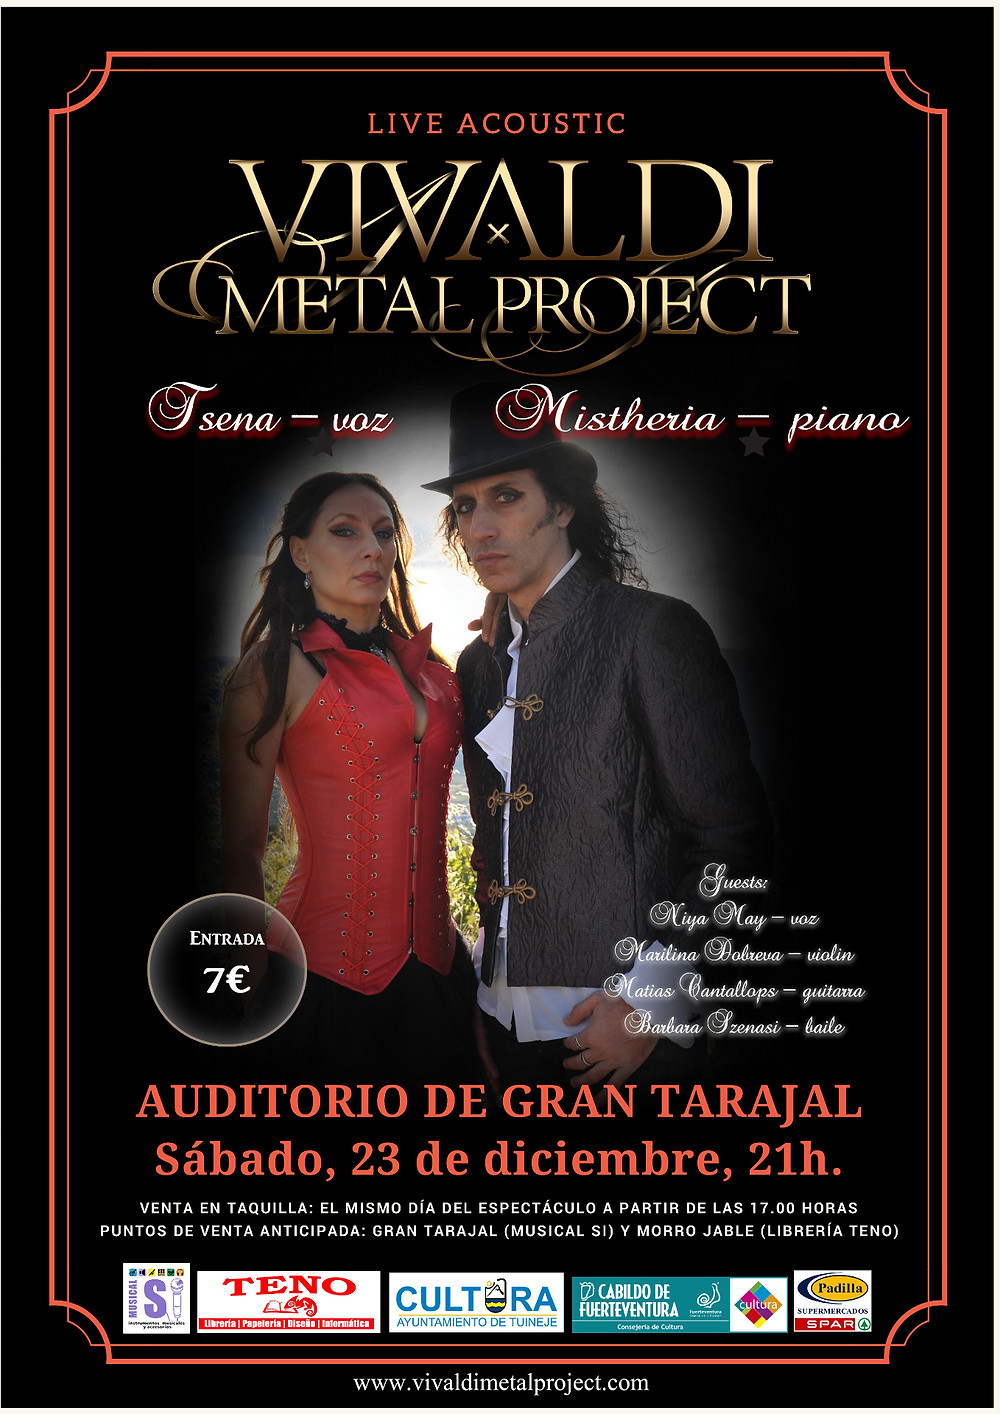 Vivaldi Metal Project live in Gran Tarajal